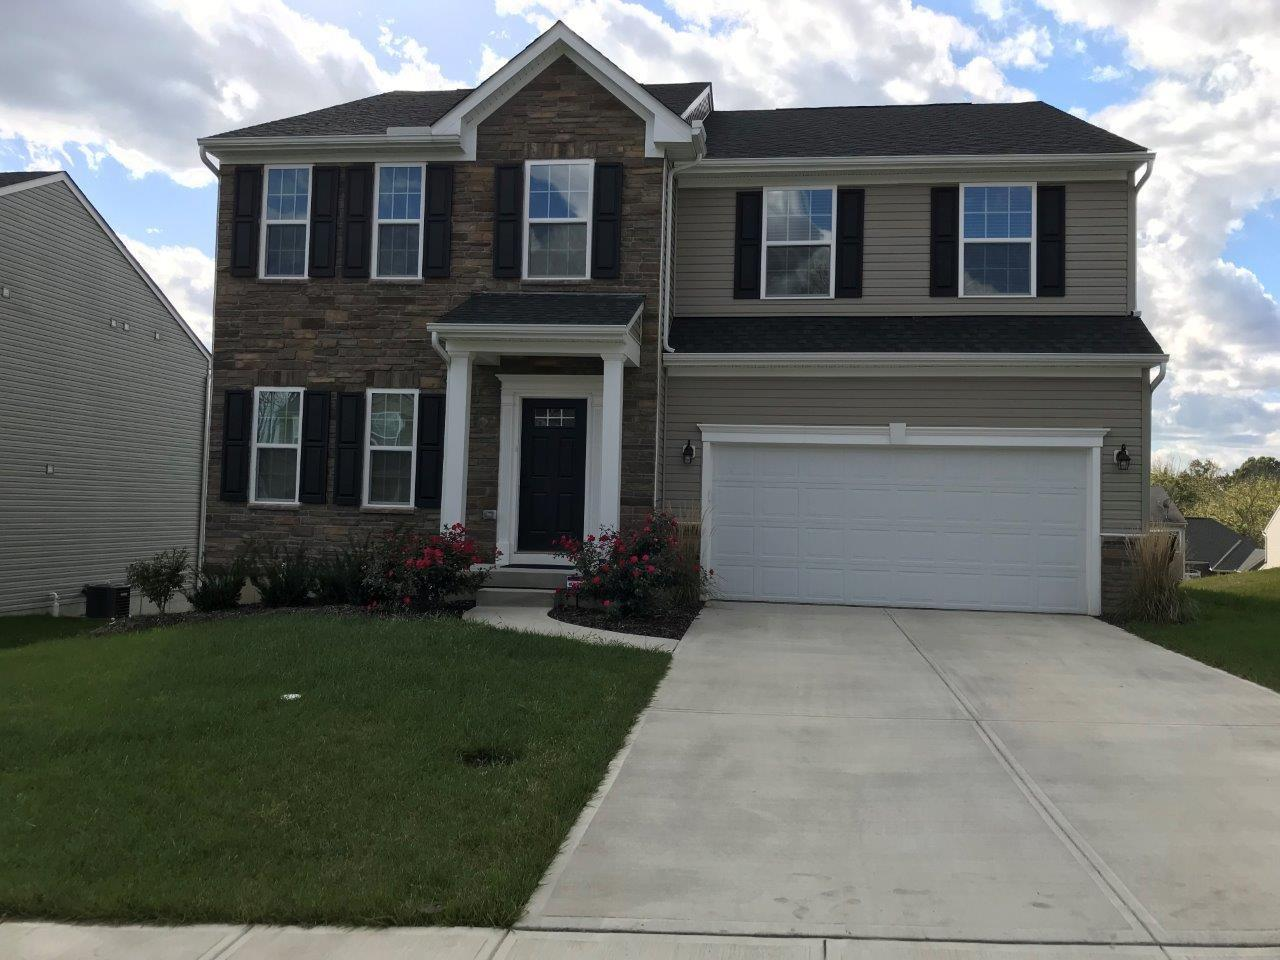 Property for sale at 8005 Valley Crossing Drive, Colerain Twp,  Ohio 45247